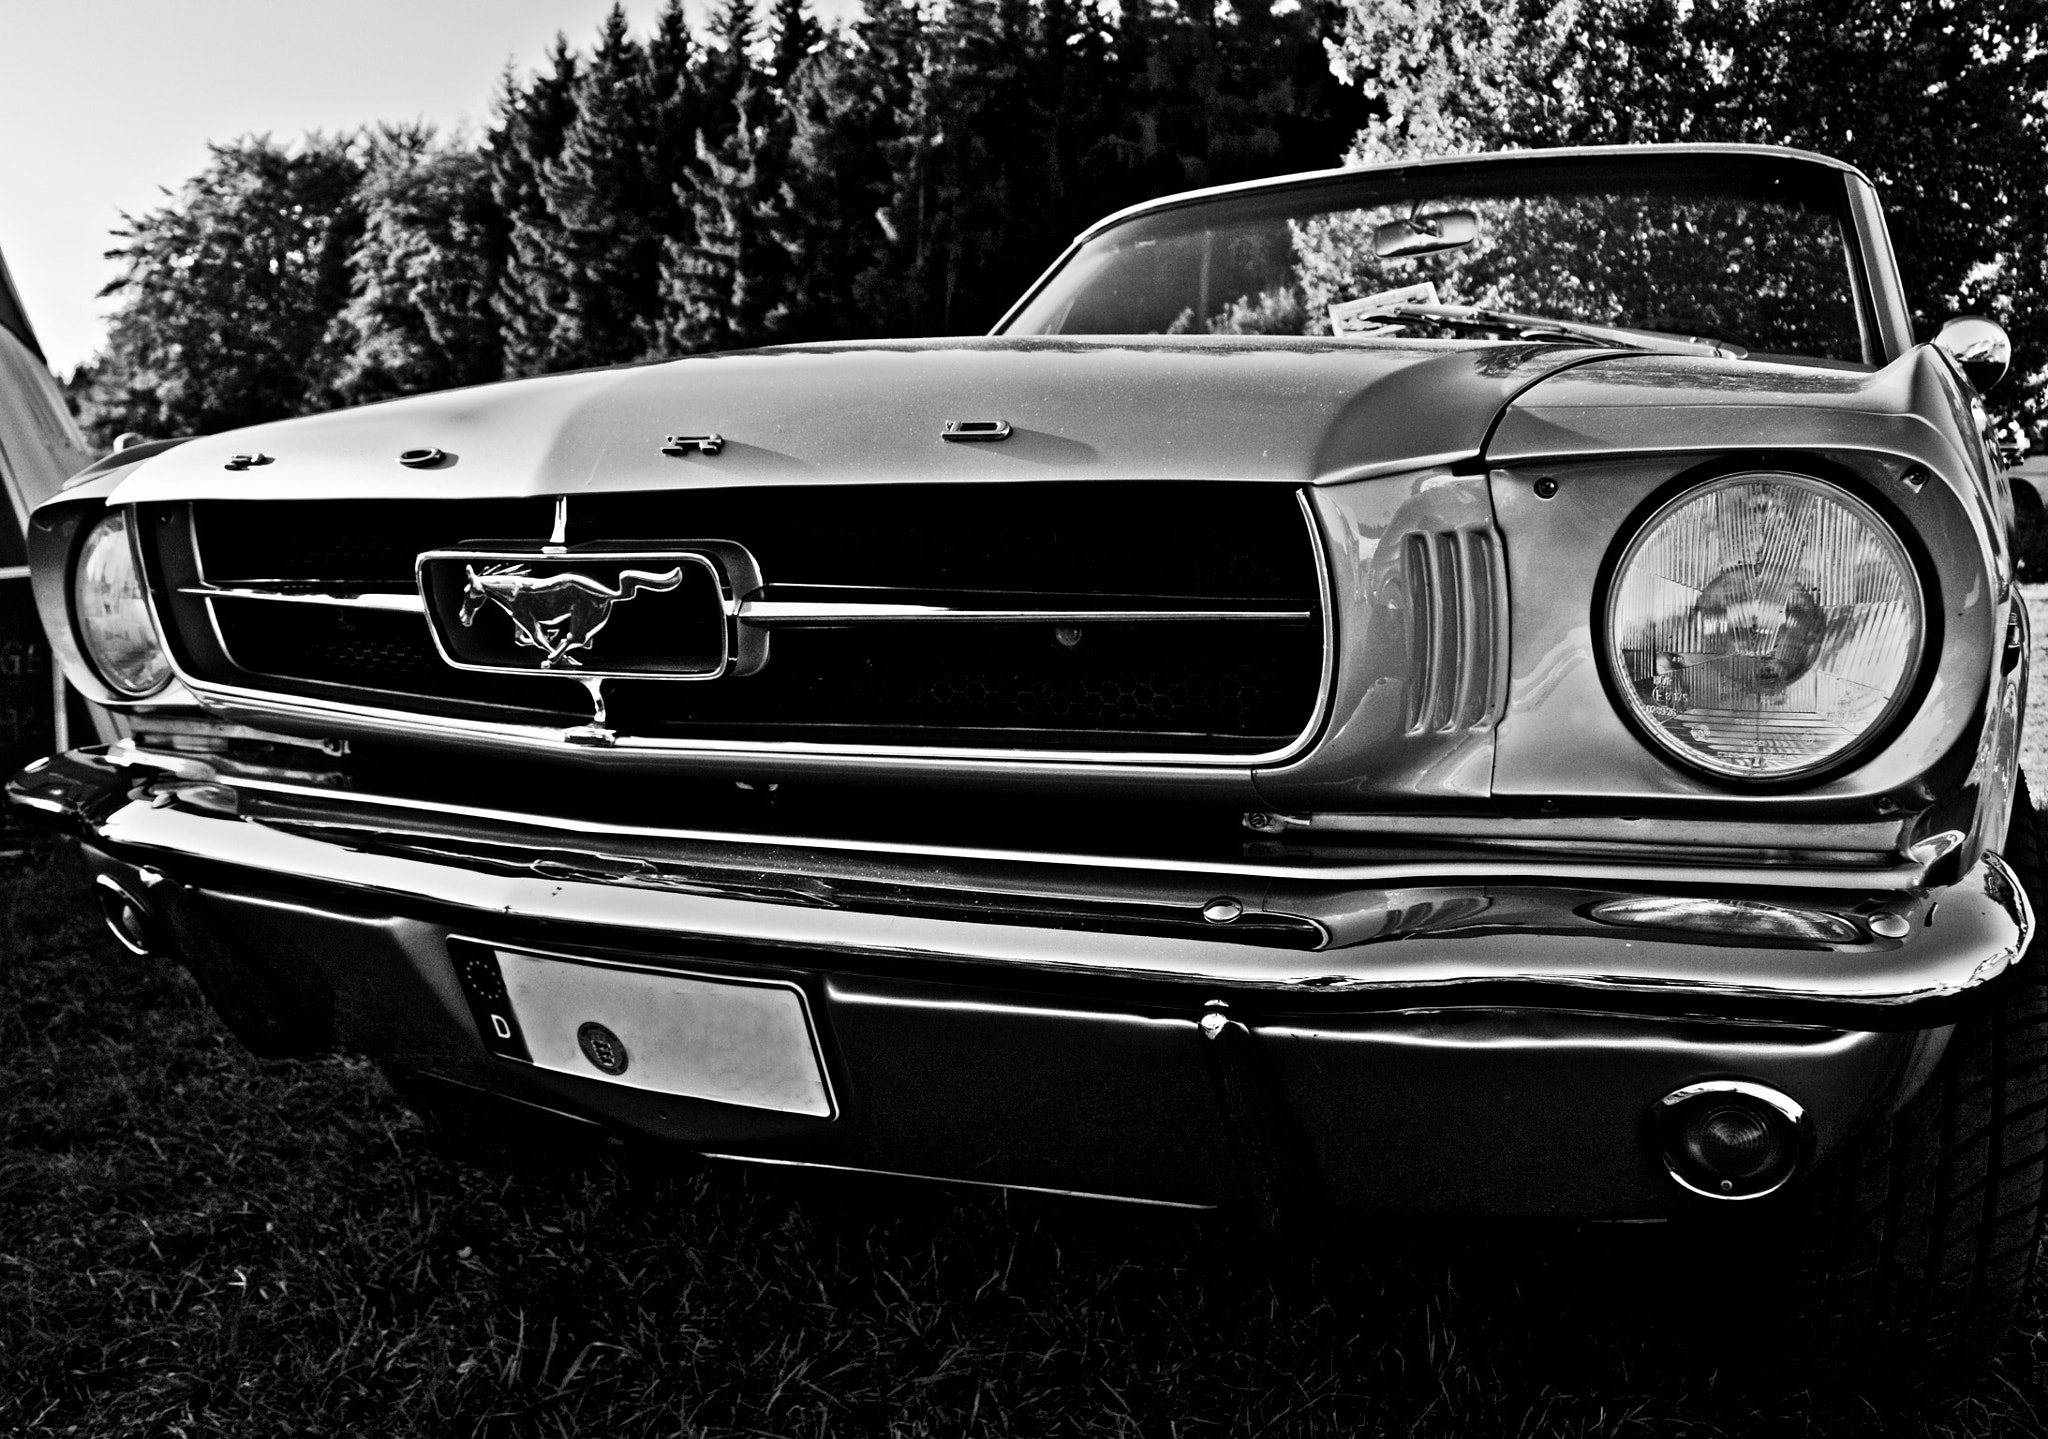 Photograph Ford Mustang by Patrick  on 500px